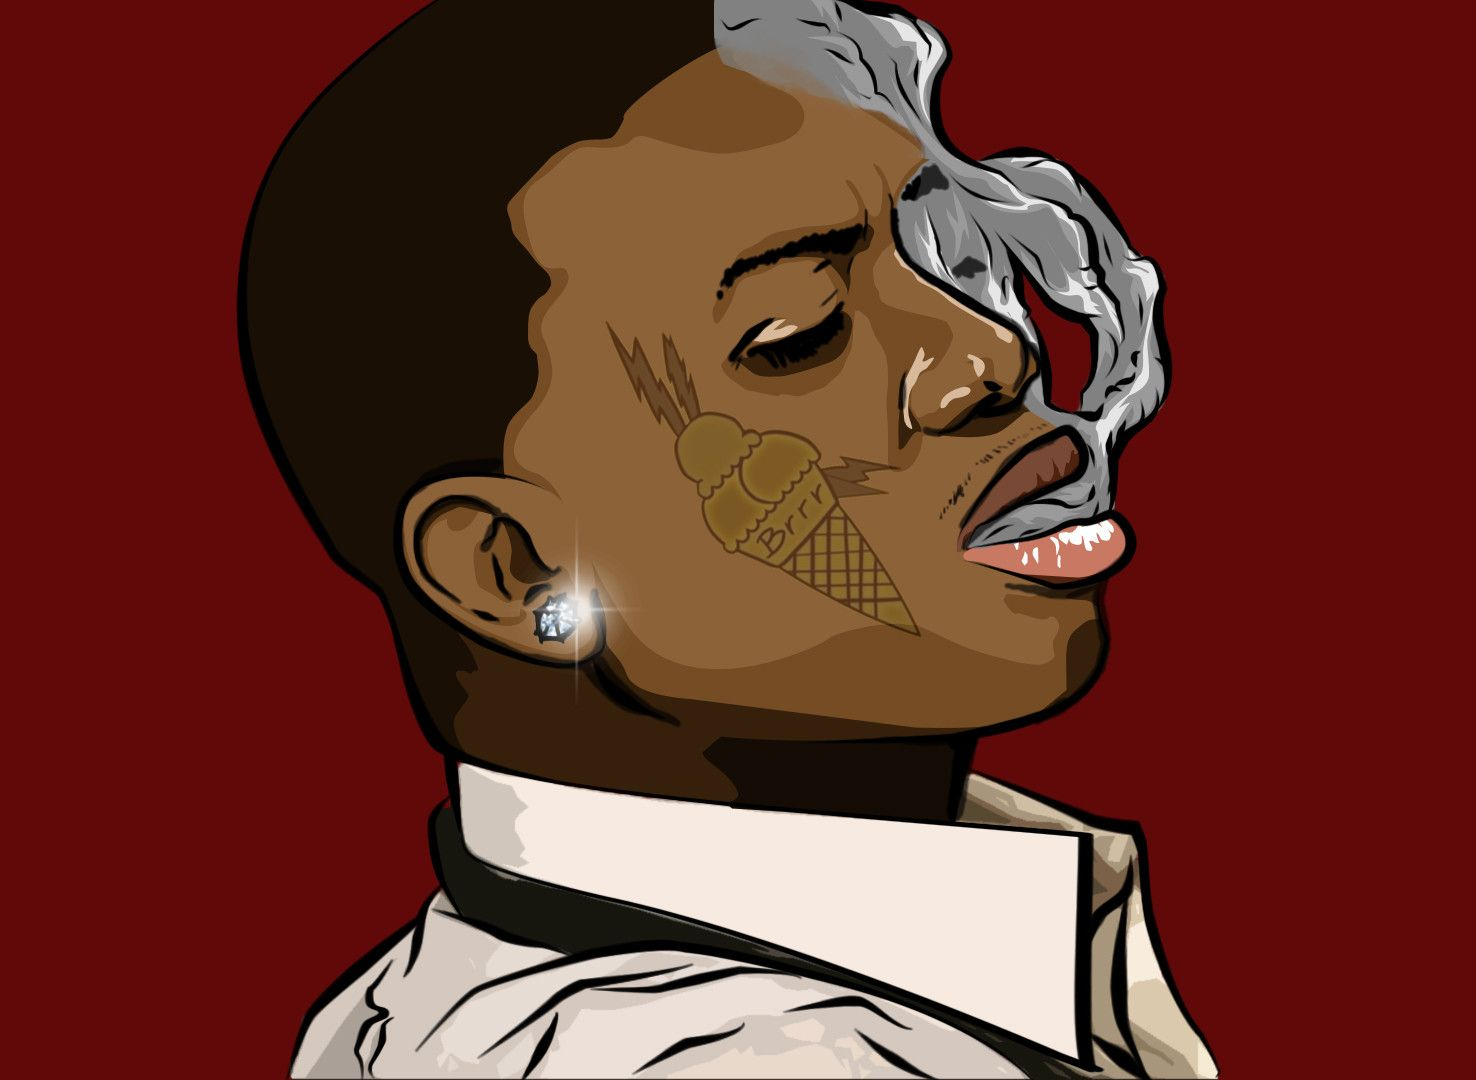 Gucci Mane Cartoon Wallpapers Top Free Gucci Mane Cartoon